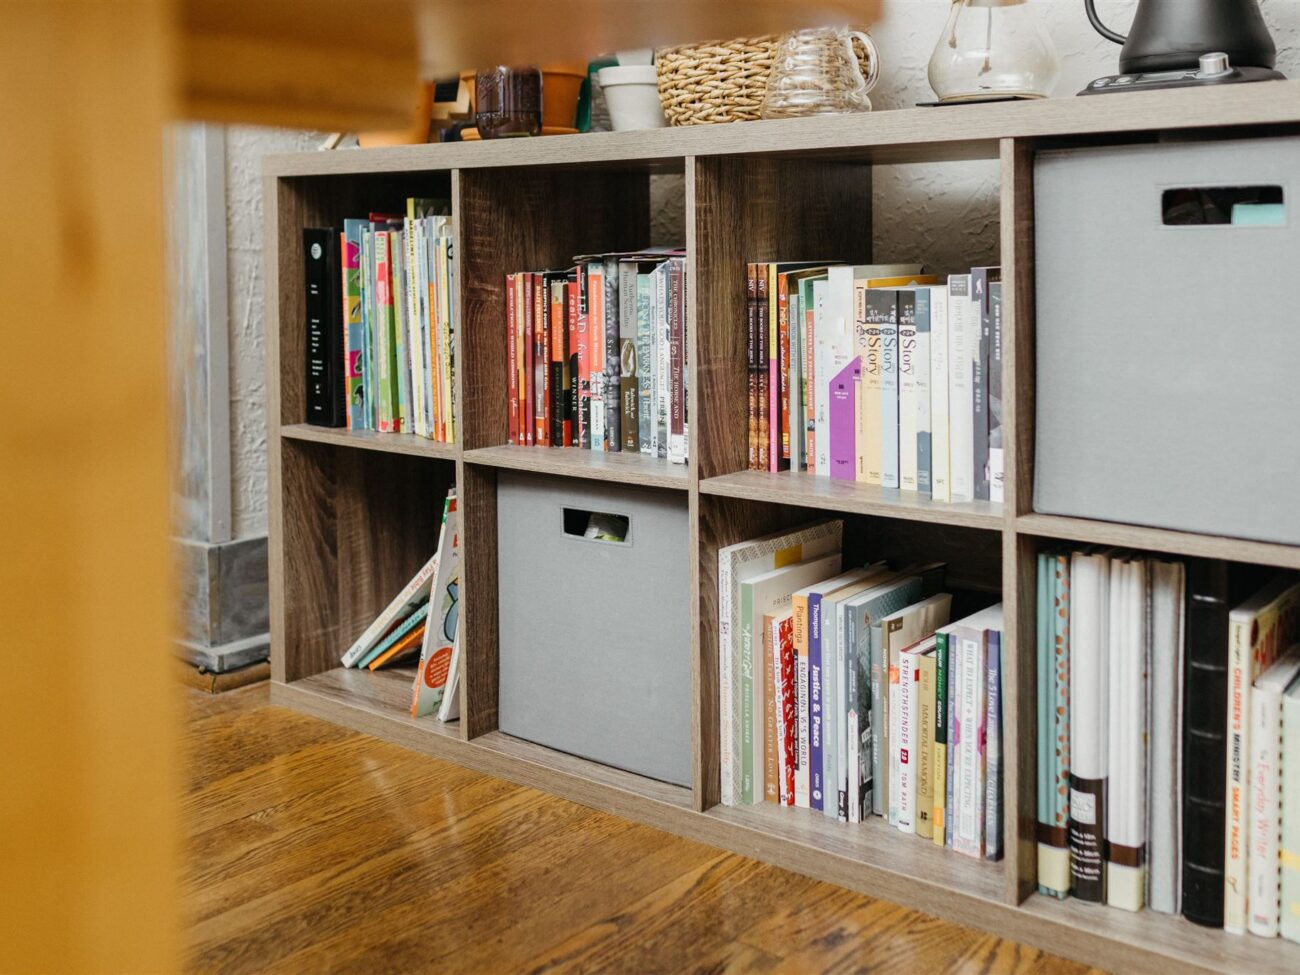 Storage is a crucial part of any home. Here are some of the best budget-friendly ideas for storing crucial items.